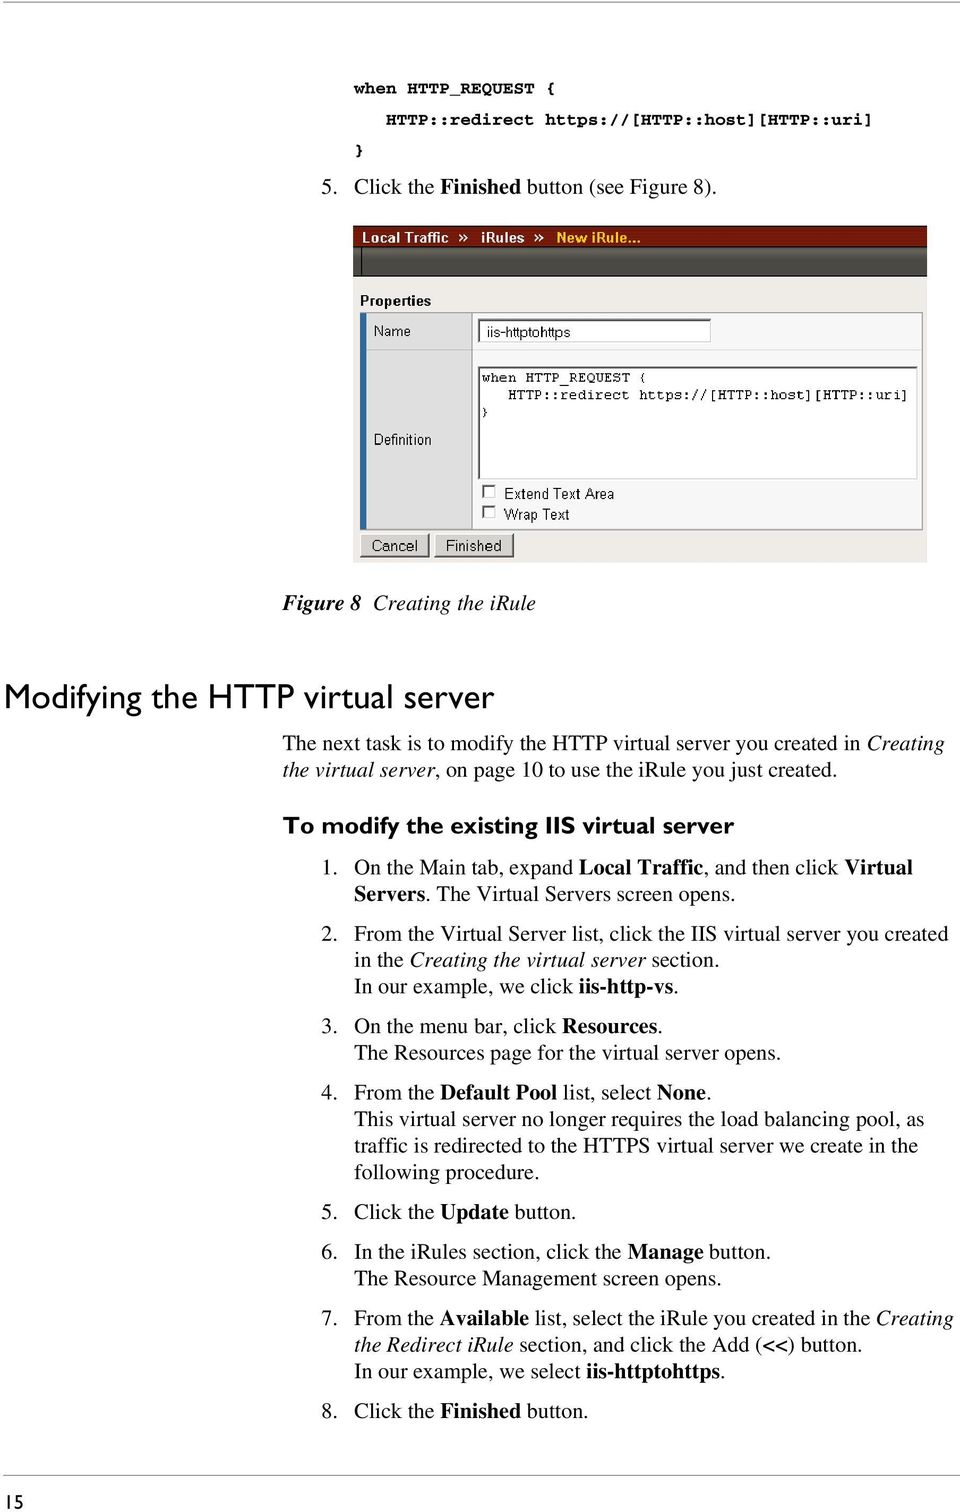 created. To modify the existing IIS virtual server 1. On the Main tab, expand Local Traffic, and then click Virtual Servers. The Virtual Servers screen opens. 2.